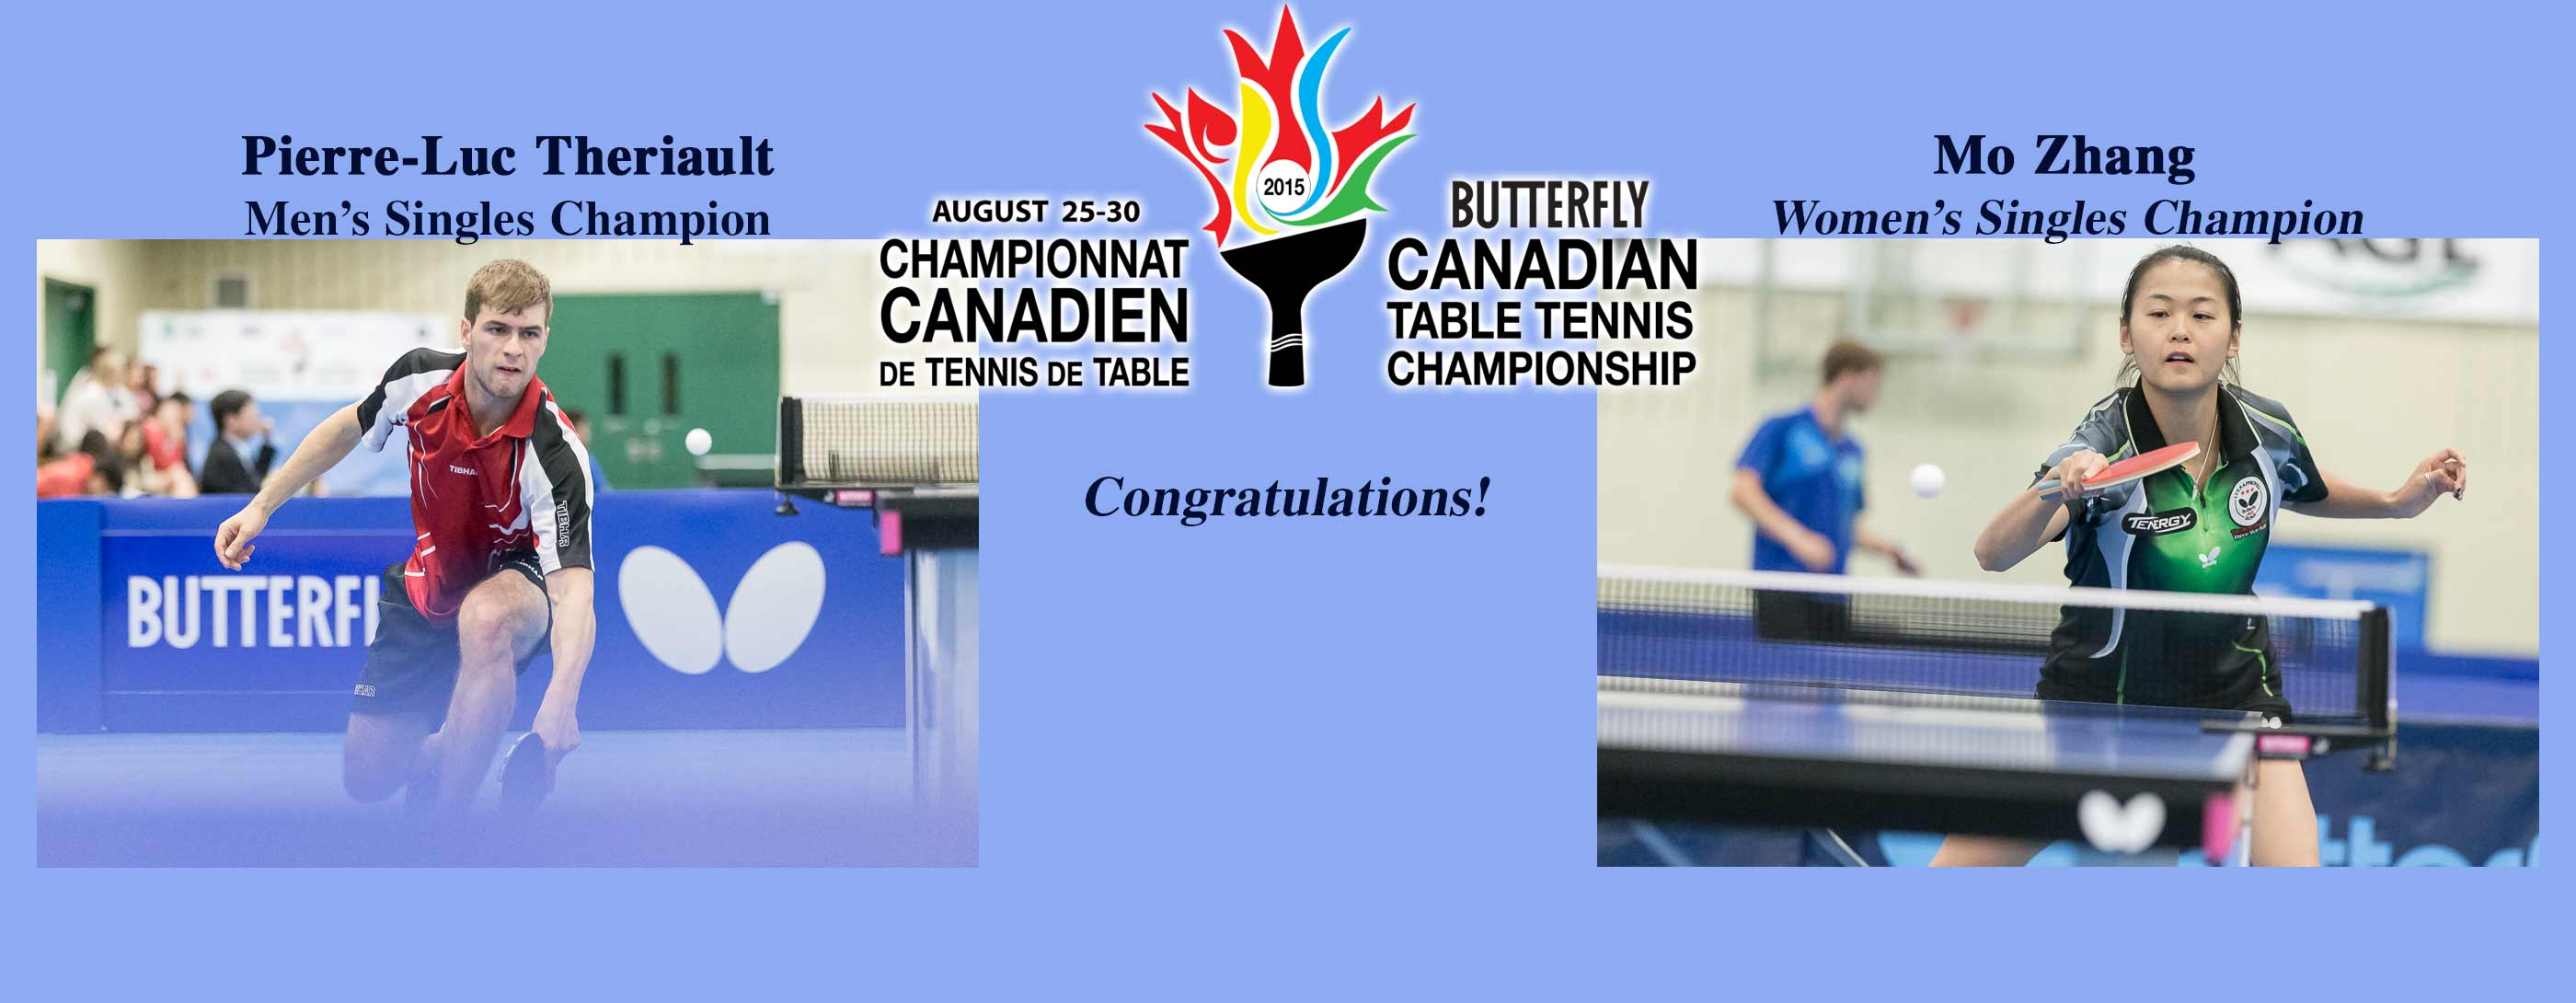 2015 Butterfly Canadian Table Tennis Champions Pierre-Luc Theriault & Mo Zhang